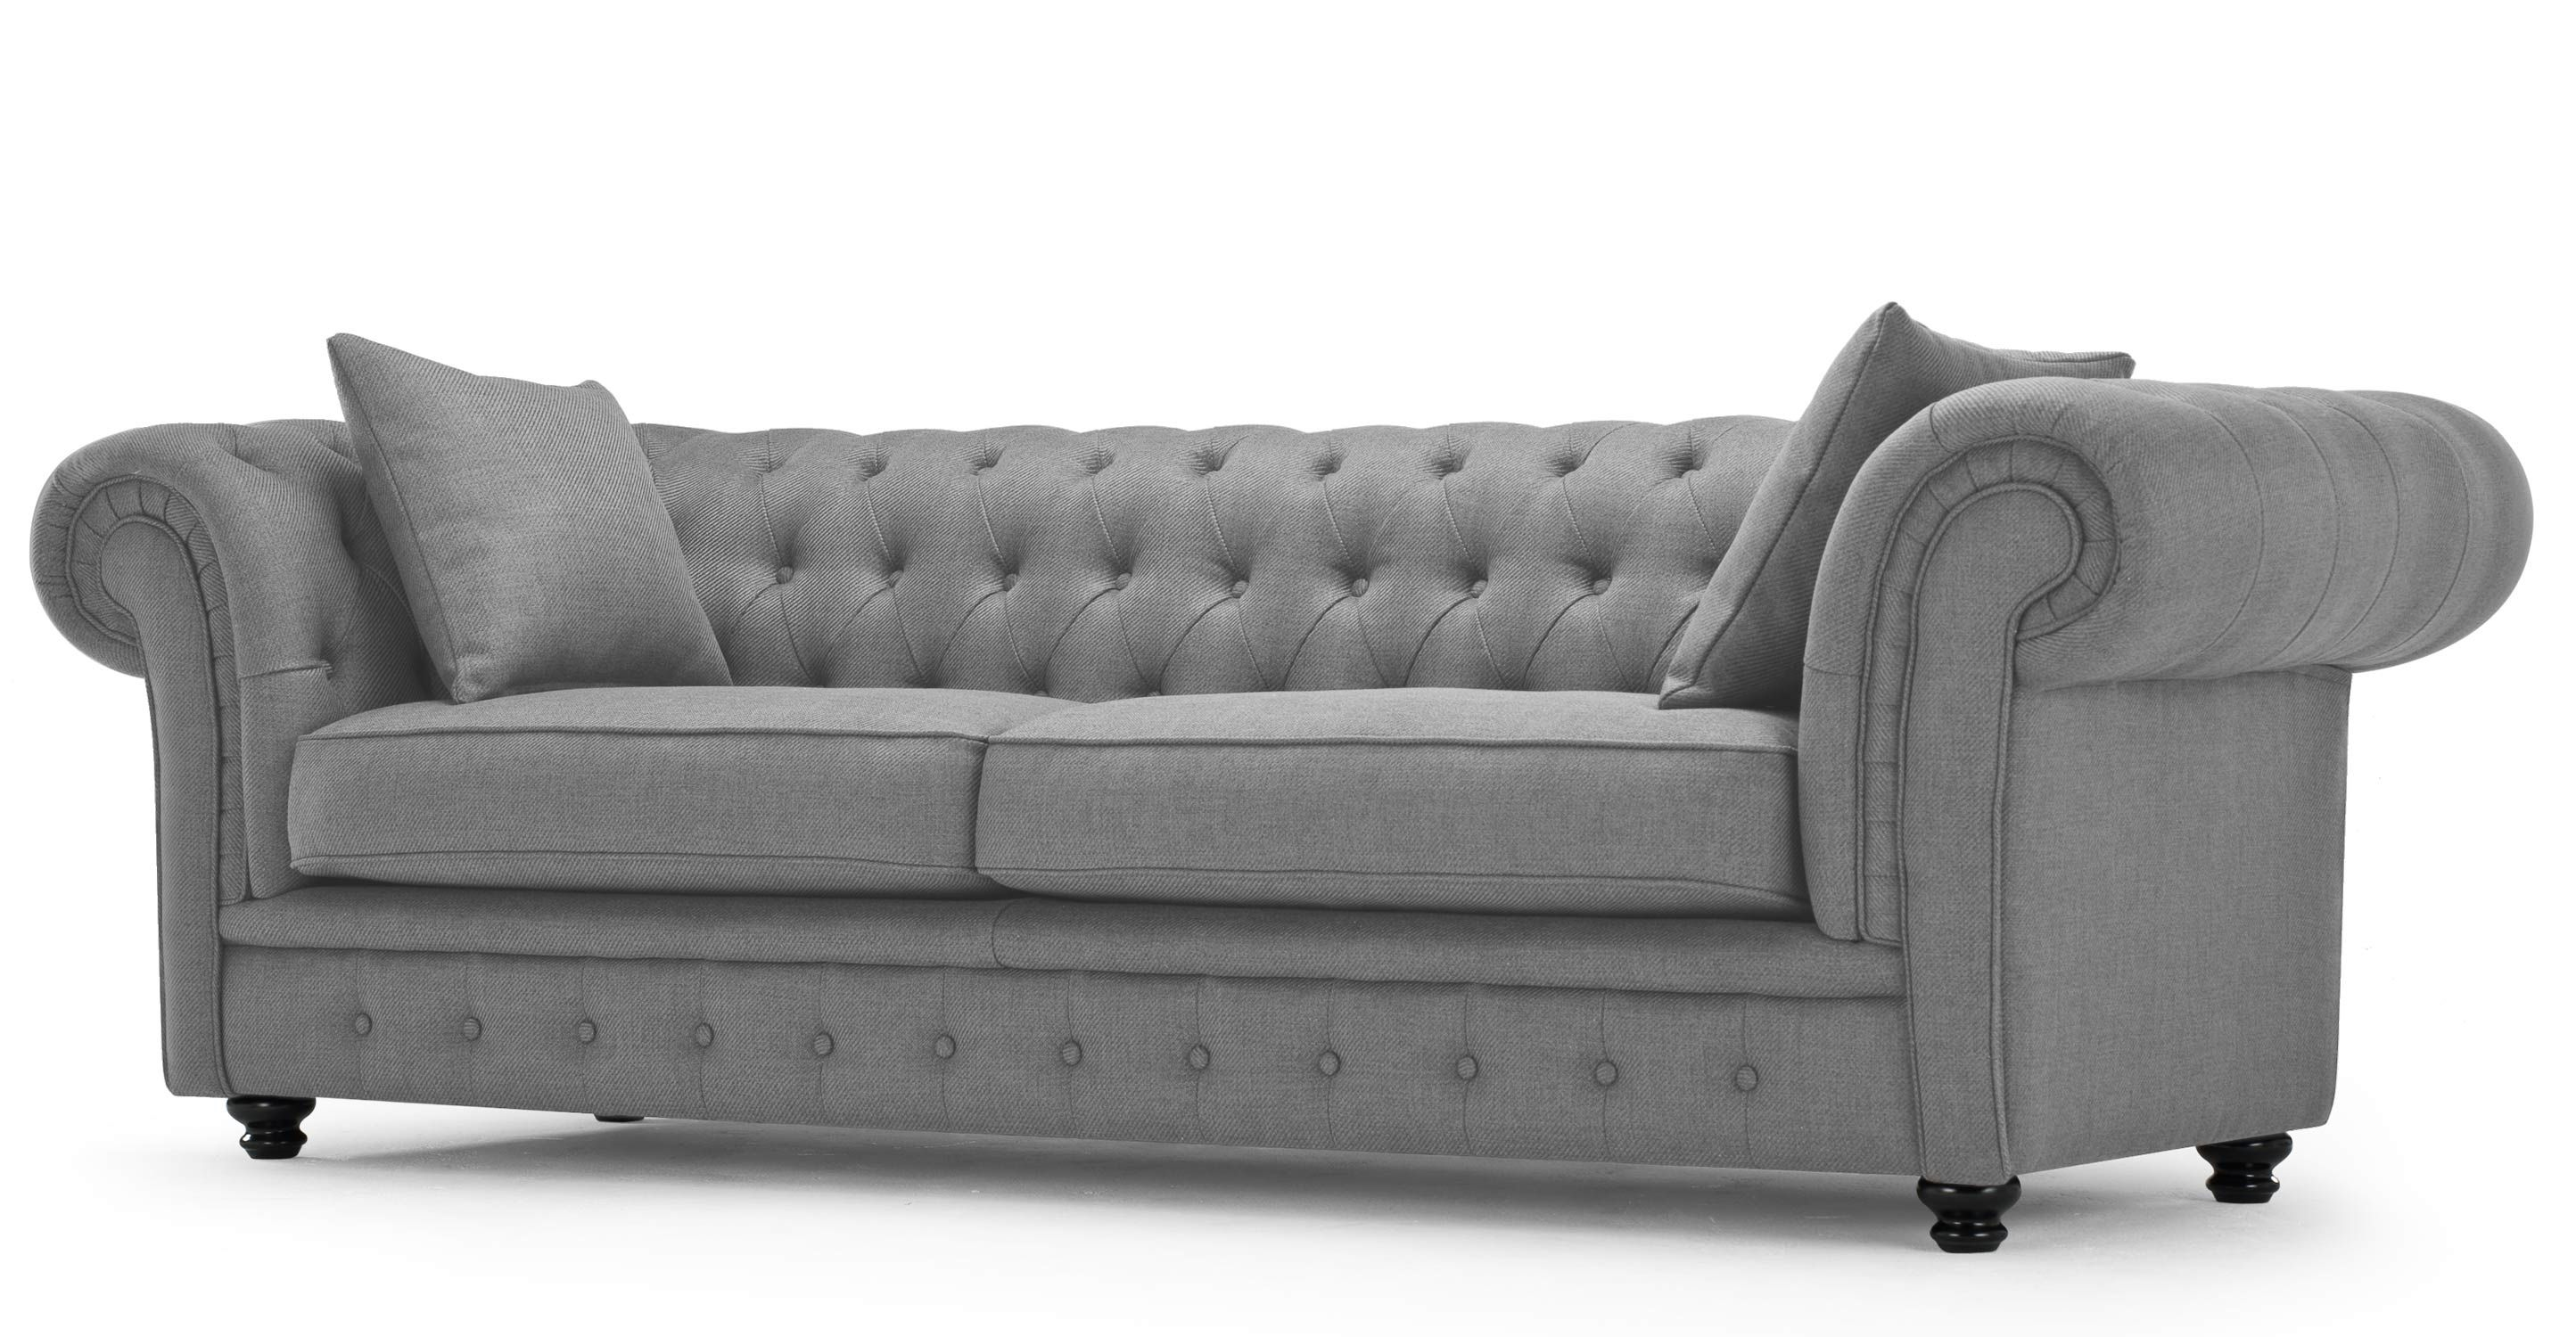 Branagh 3 Seater Chesterfield Sofa Pearl Grey Home Decoration